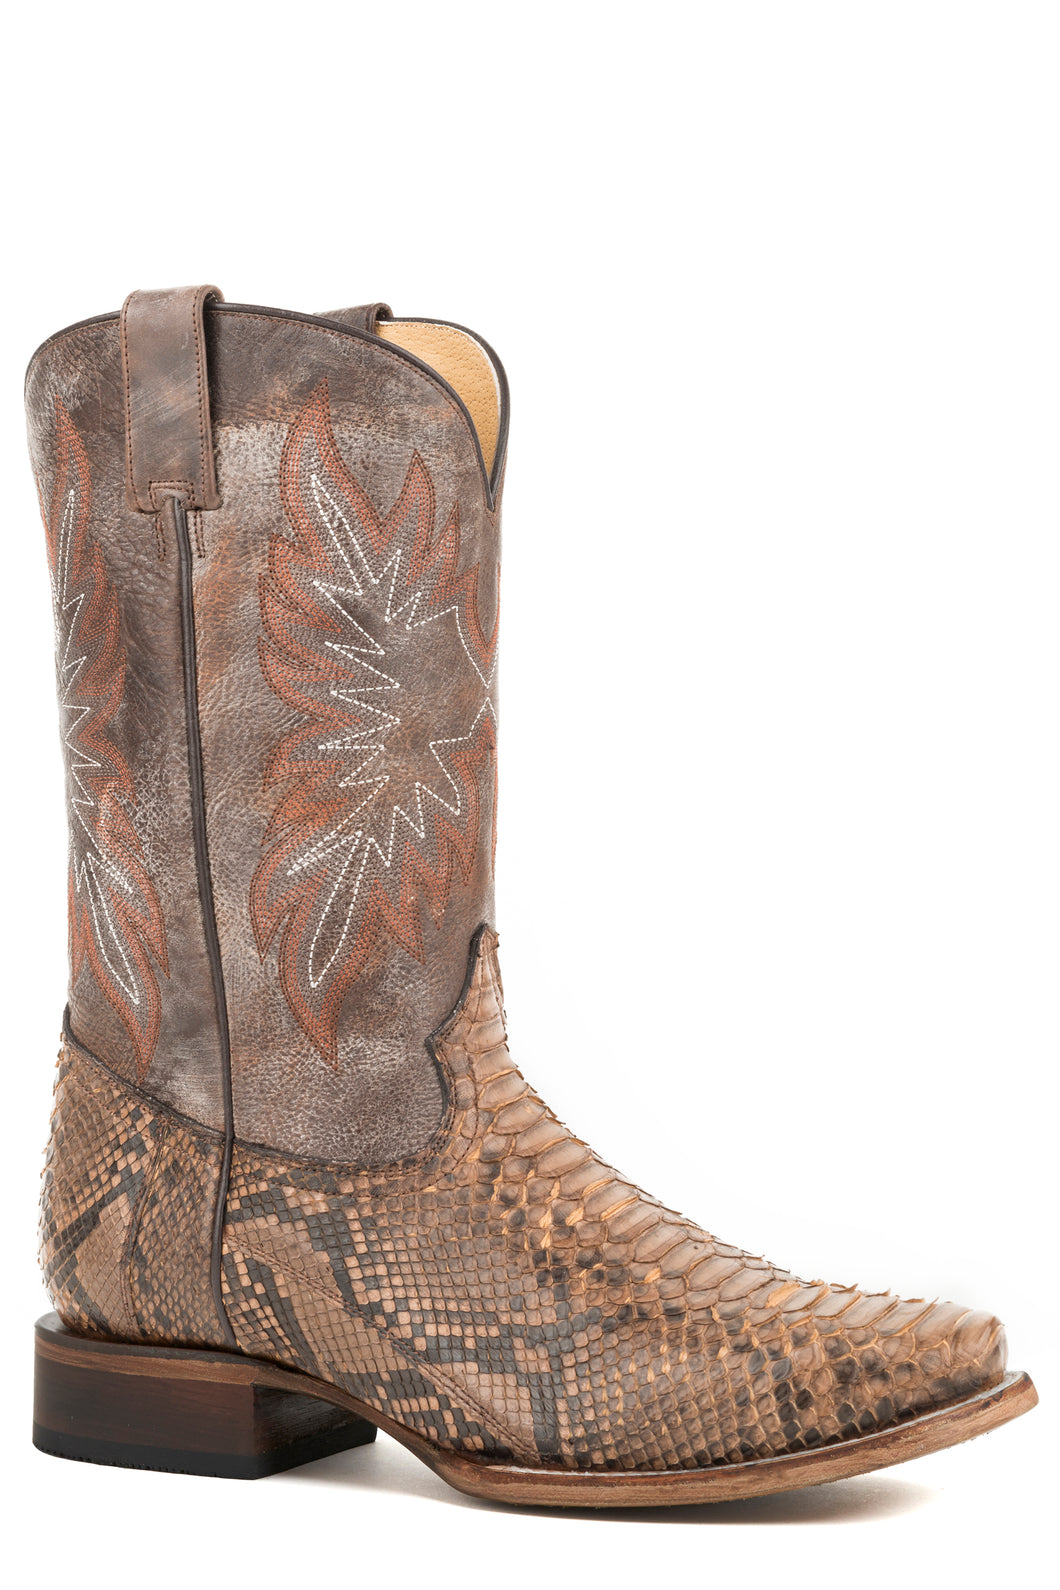 Snake Eyes Boot Mens Boots Brown Backcut Python Vamp